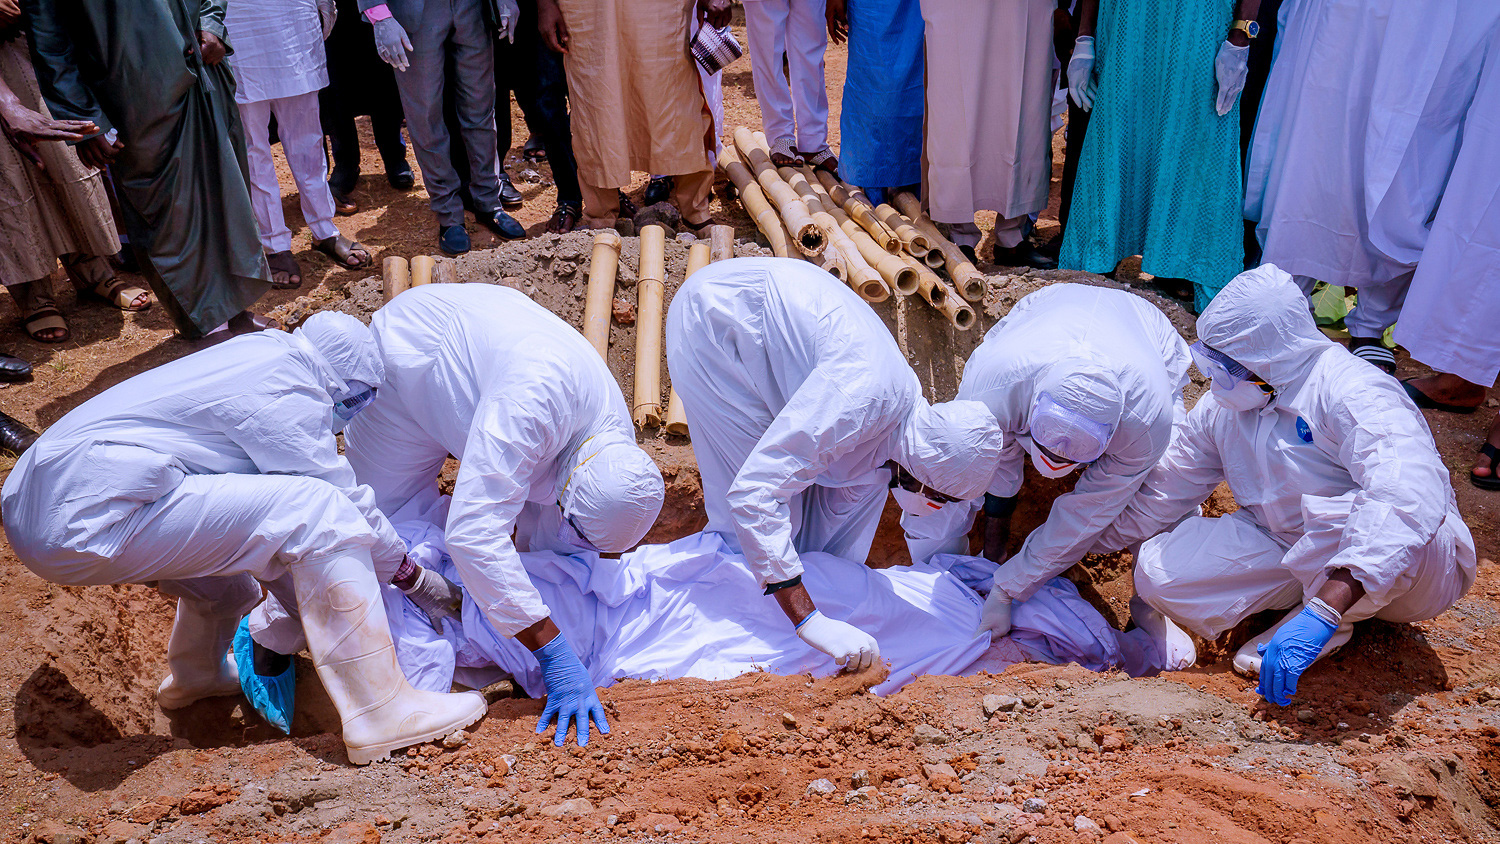 The photo shows people in protective gear lowering a body into the ground.